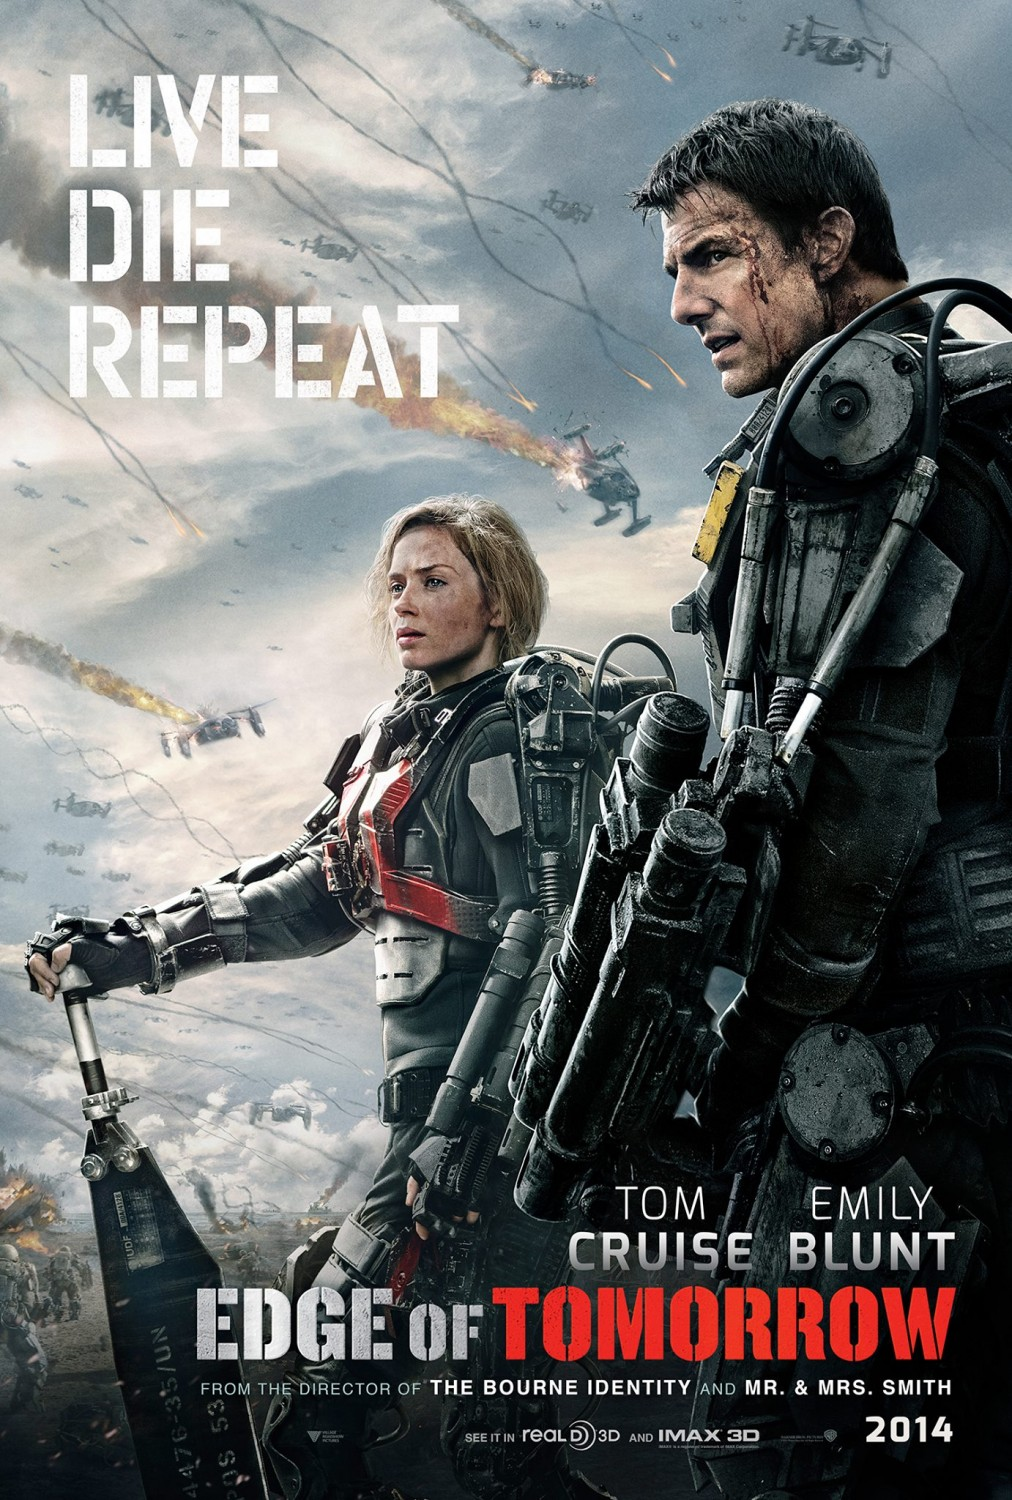 Edge of tomorrow poster Emily Blunt Tom Cruise